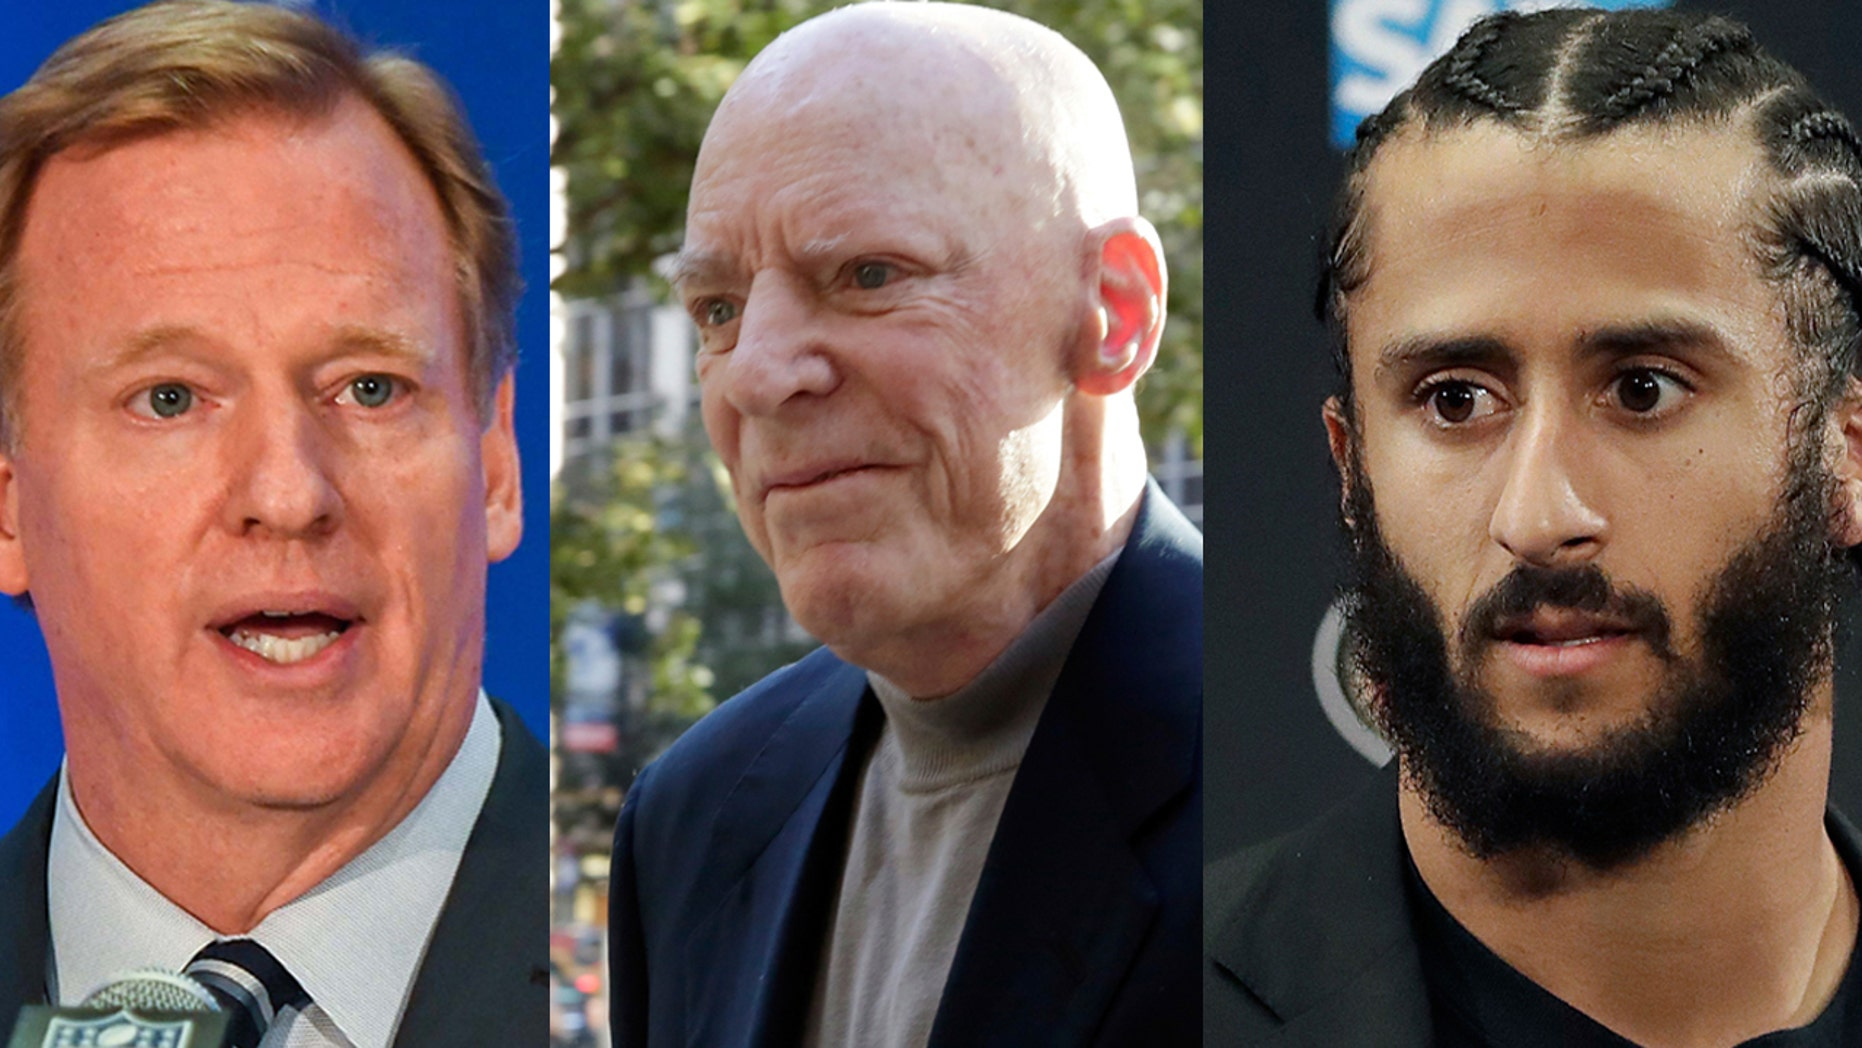 The NFL Players Coalition is seeking a meeting with, from left, Commissioner Roger Goodell, Houston Texans owner Bob McNair and free agent quarterback Colin Kaepernick.